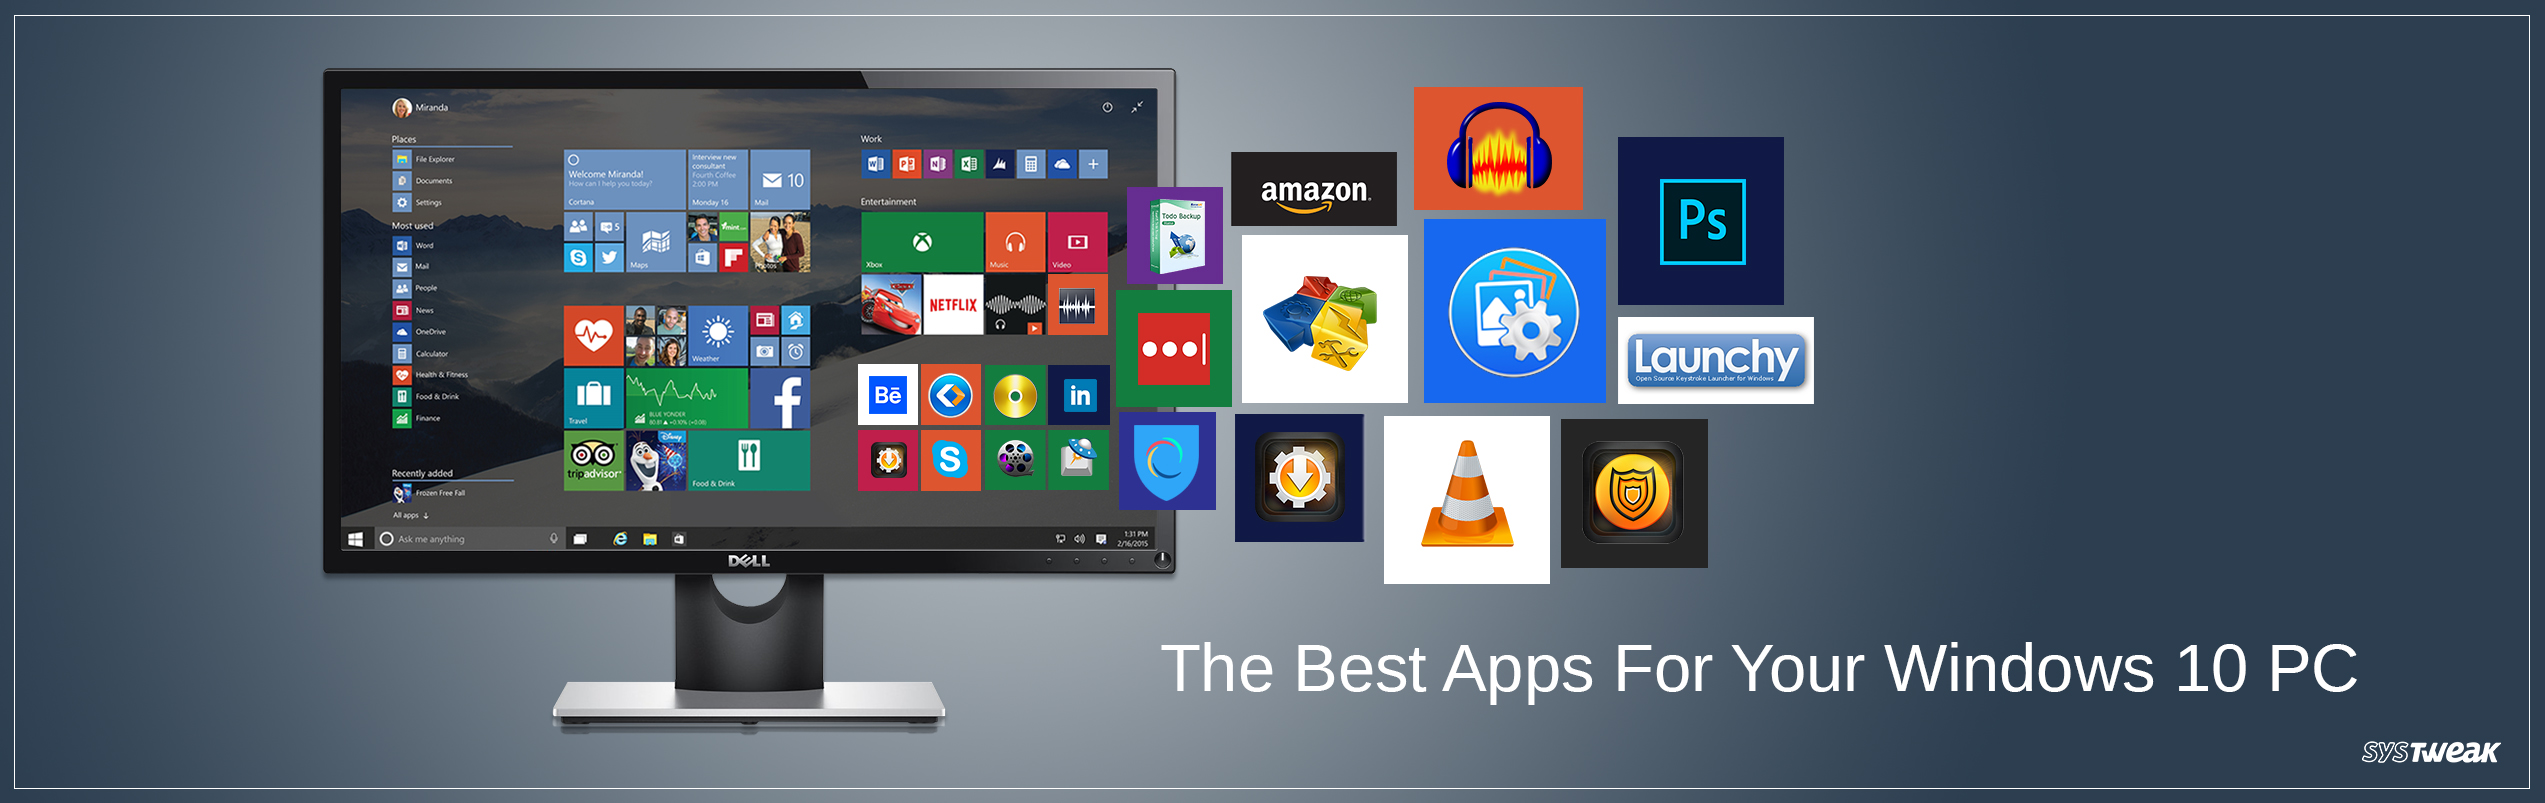 best apps for pc 2019